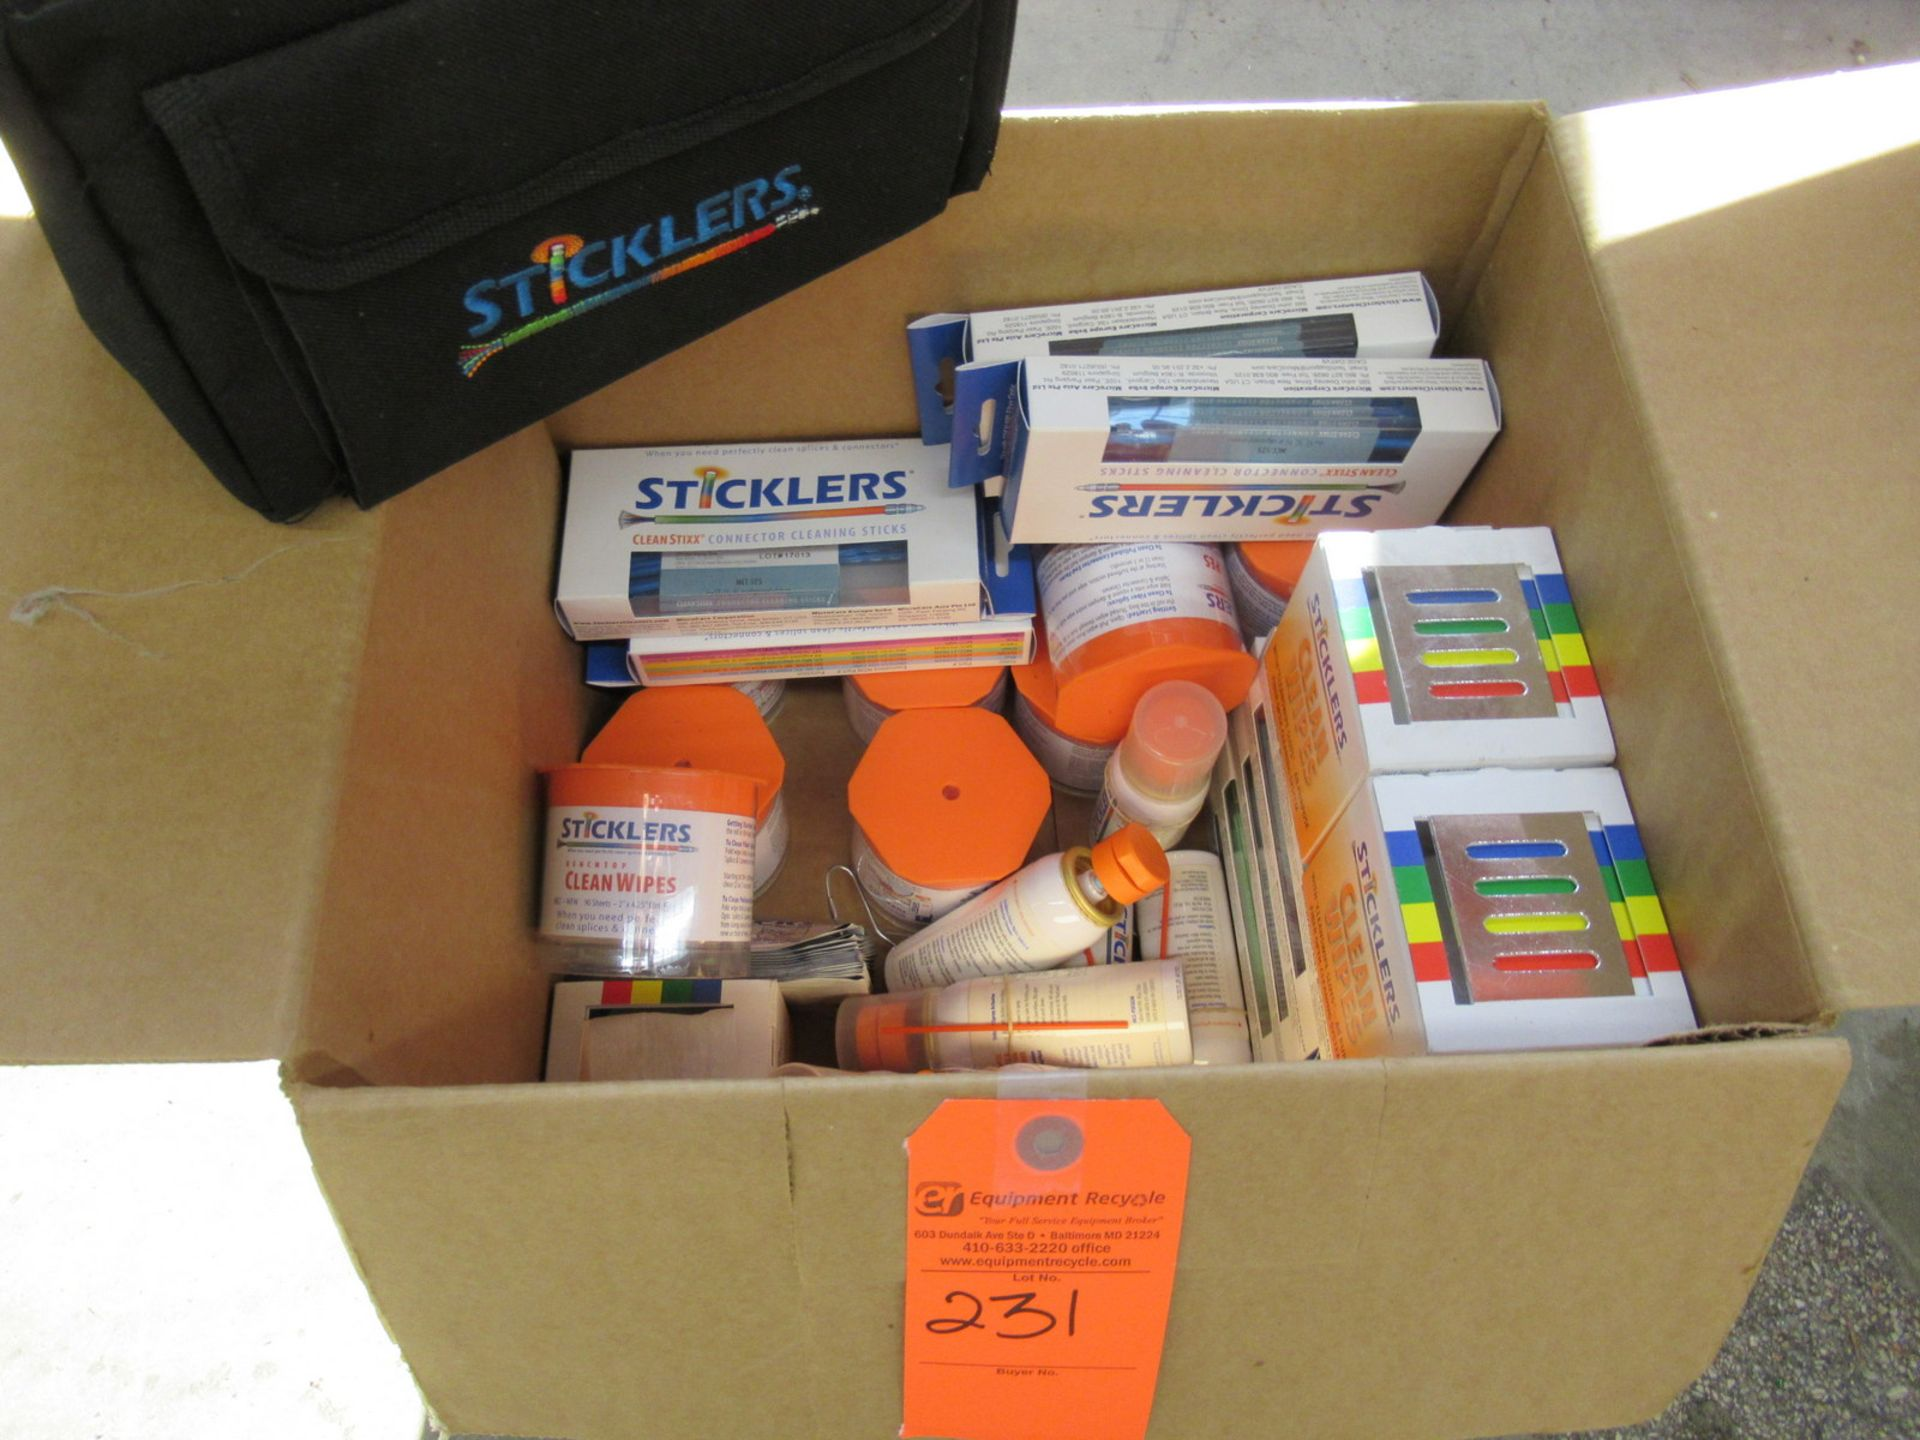 Lot 231 - Sticklers Cleaning Sticks, Wipes, Cleaner, and more with a Travel Bag